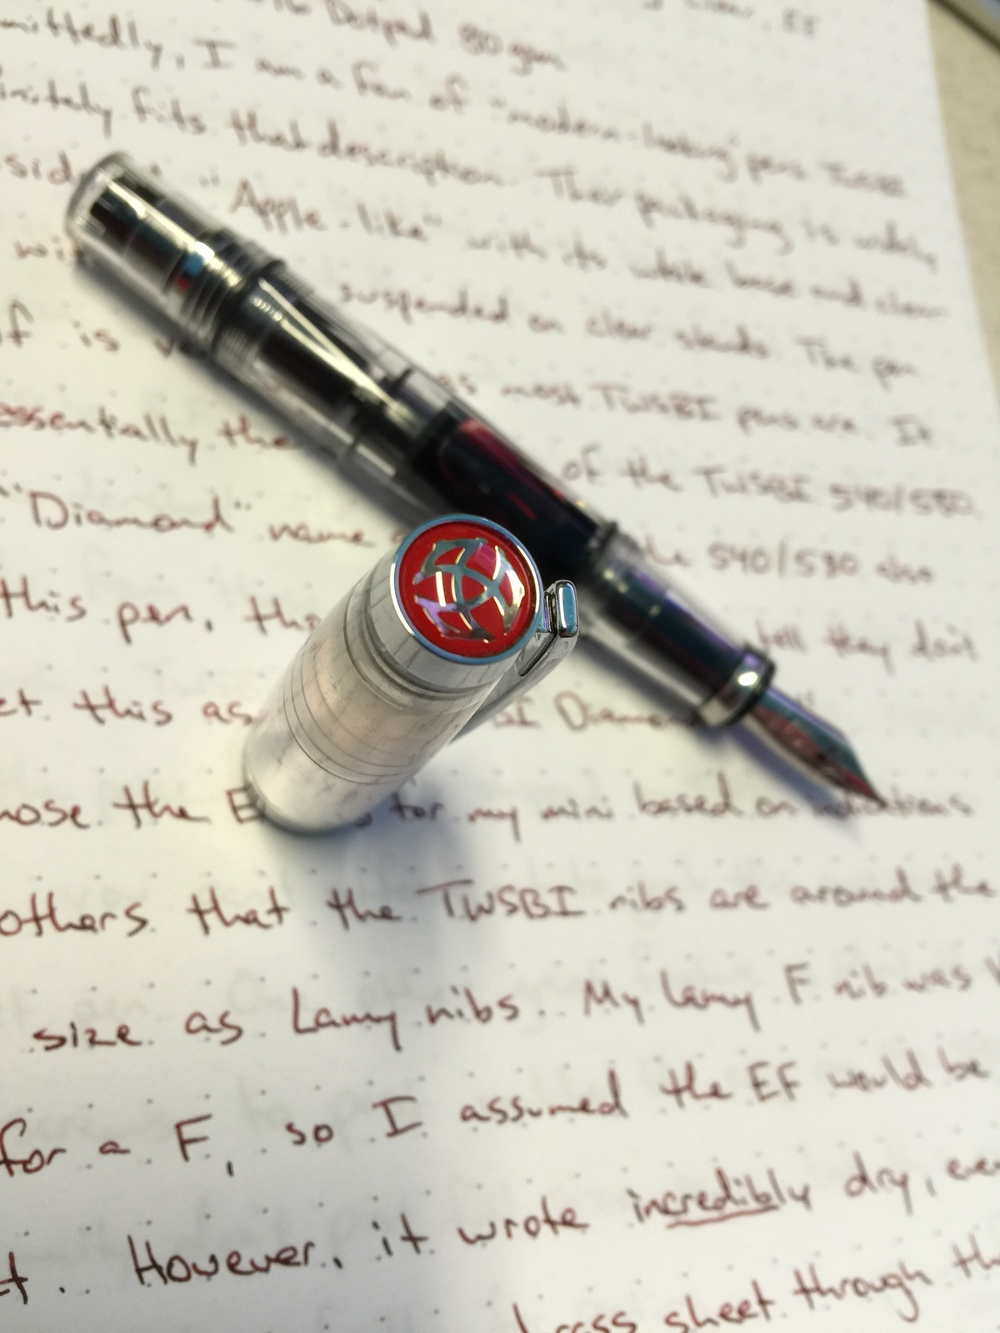 I love the TWSBI logo